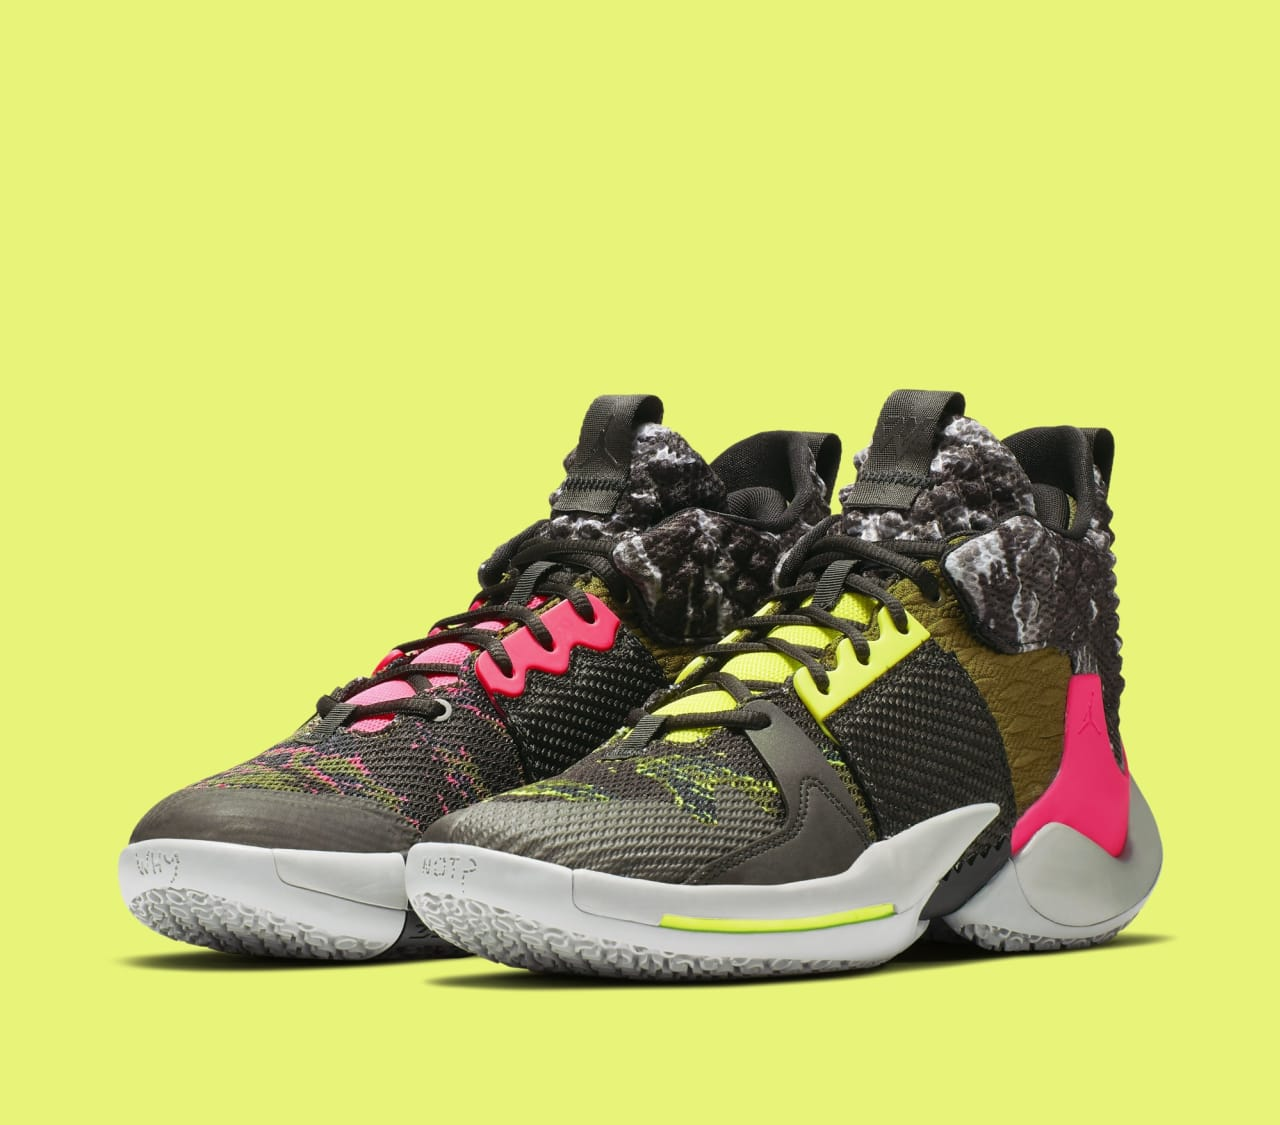 4ed4bc79726 A Rebellious Colorway of the Jordan Why Not Zer0.2. Russell Westbrook ...